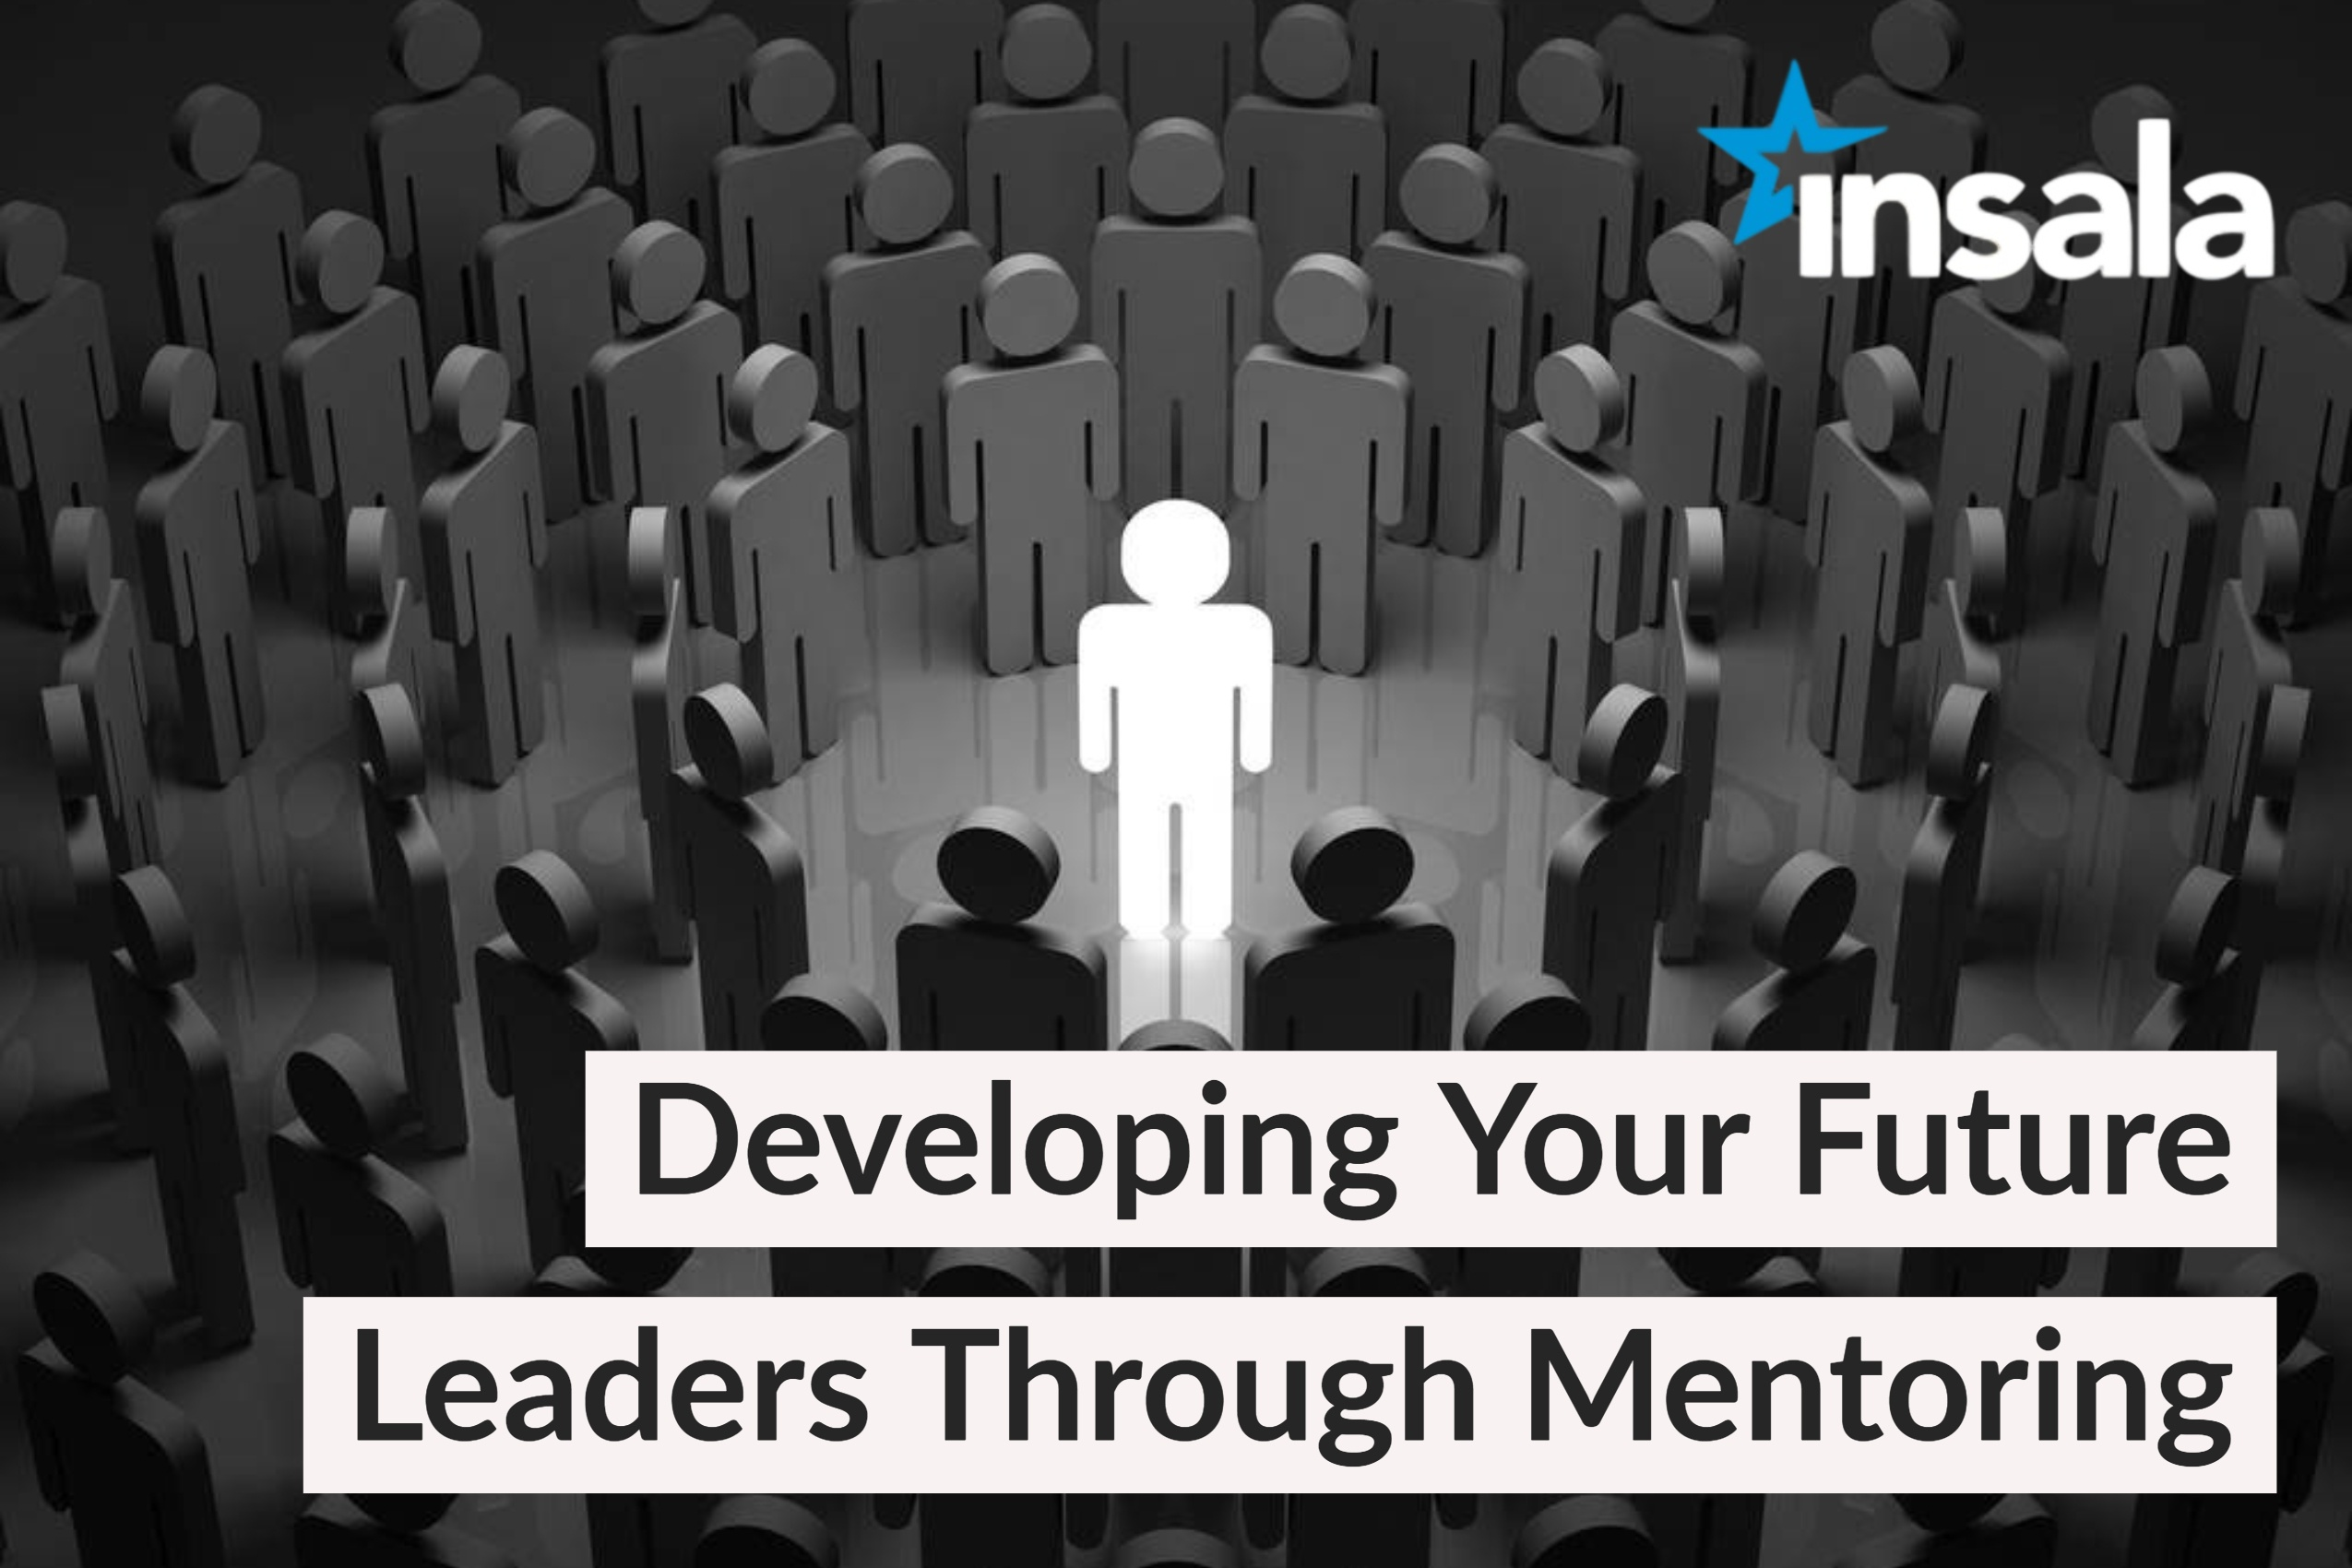 Developing your future leaders through mentoring